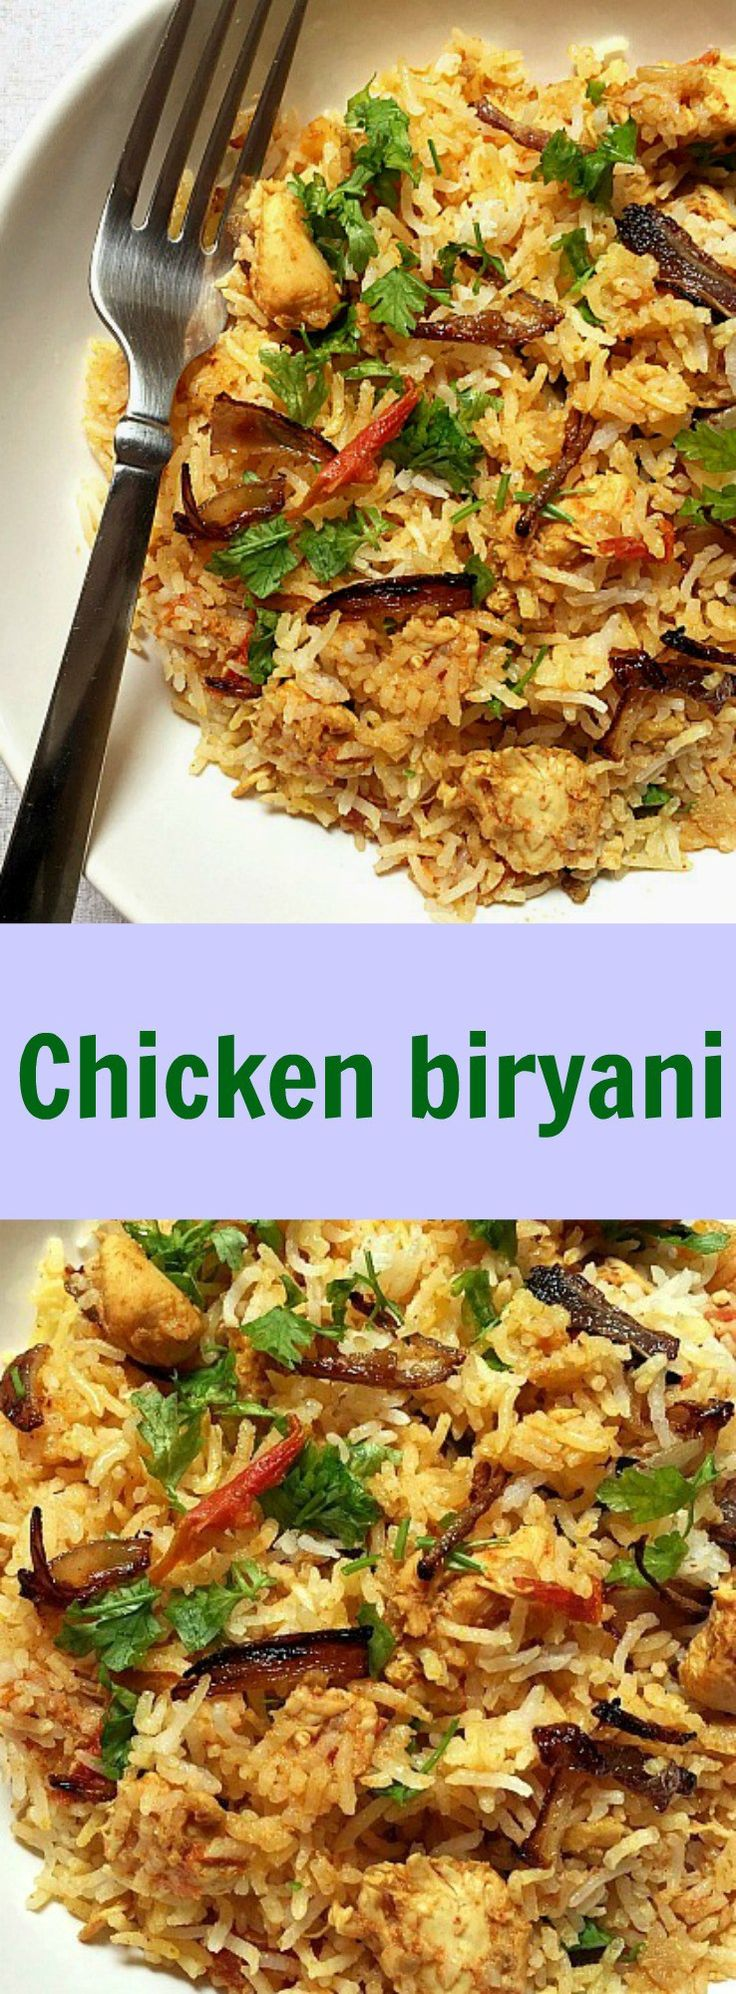 my favourite fod is biryani If you are a die-hard fan of biryani, take things up a notch and tease your taste  buds a little  our podcast: glass half full  you may also like : food for  thought: unpeeling the mango's interesting history in india  from an army dish  to a dish fit for royalty, the biryani today is a pan-india culinary favourite.